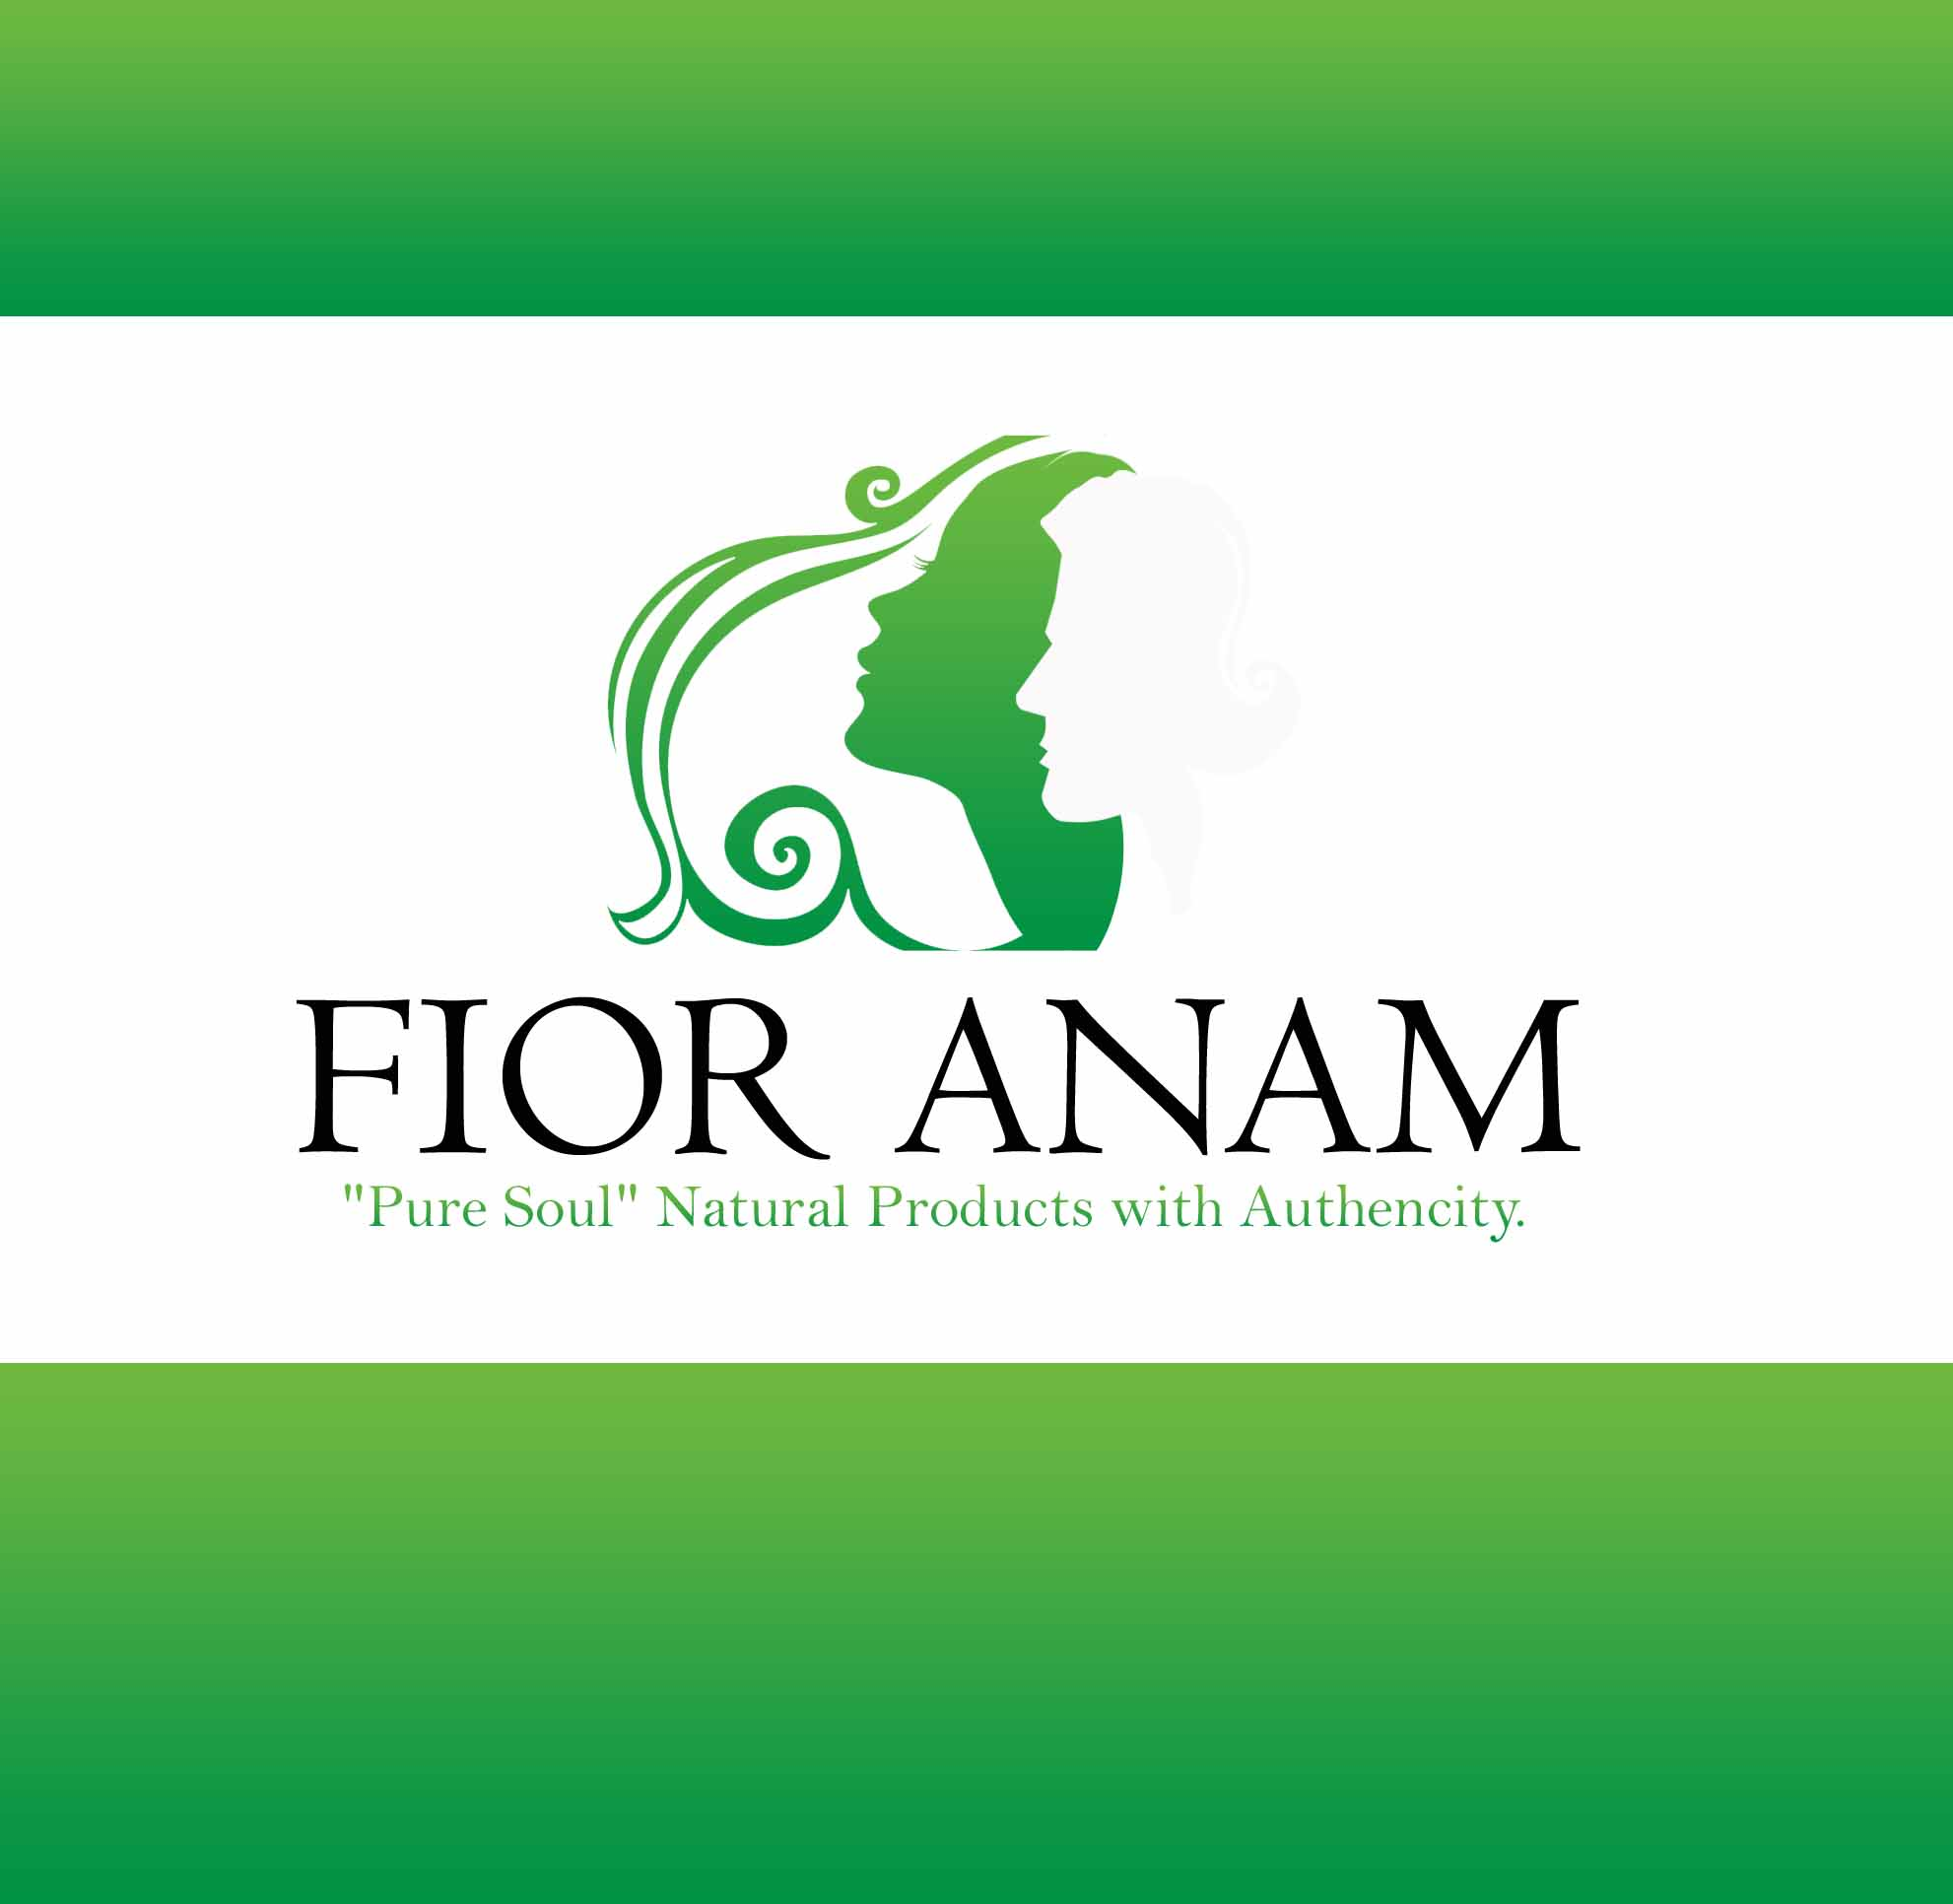 Logo Design by JSDESIGNGROUP - Entry No. 183 in the Logo Design Contest Creative Logo Design for Fior Anam.